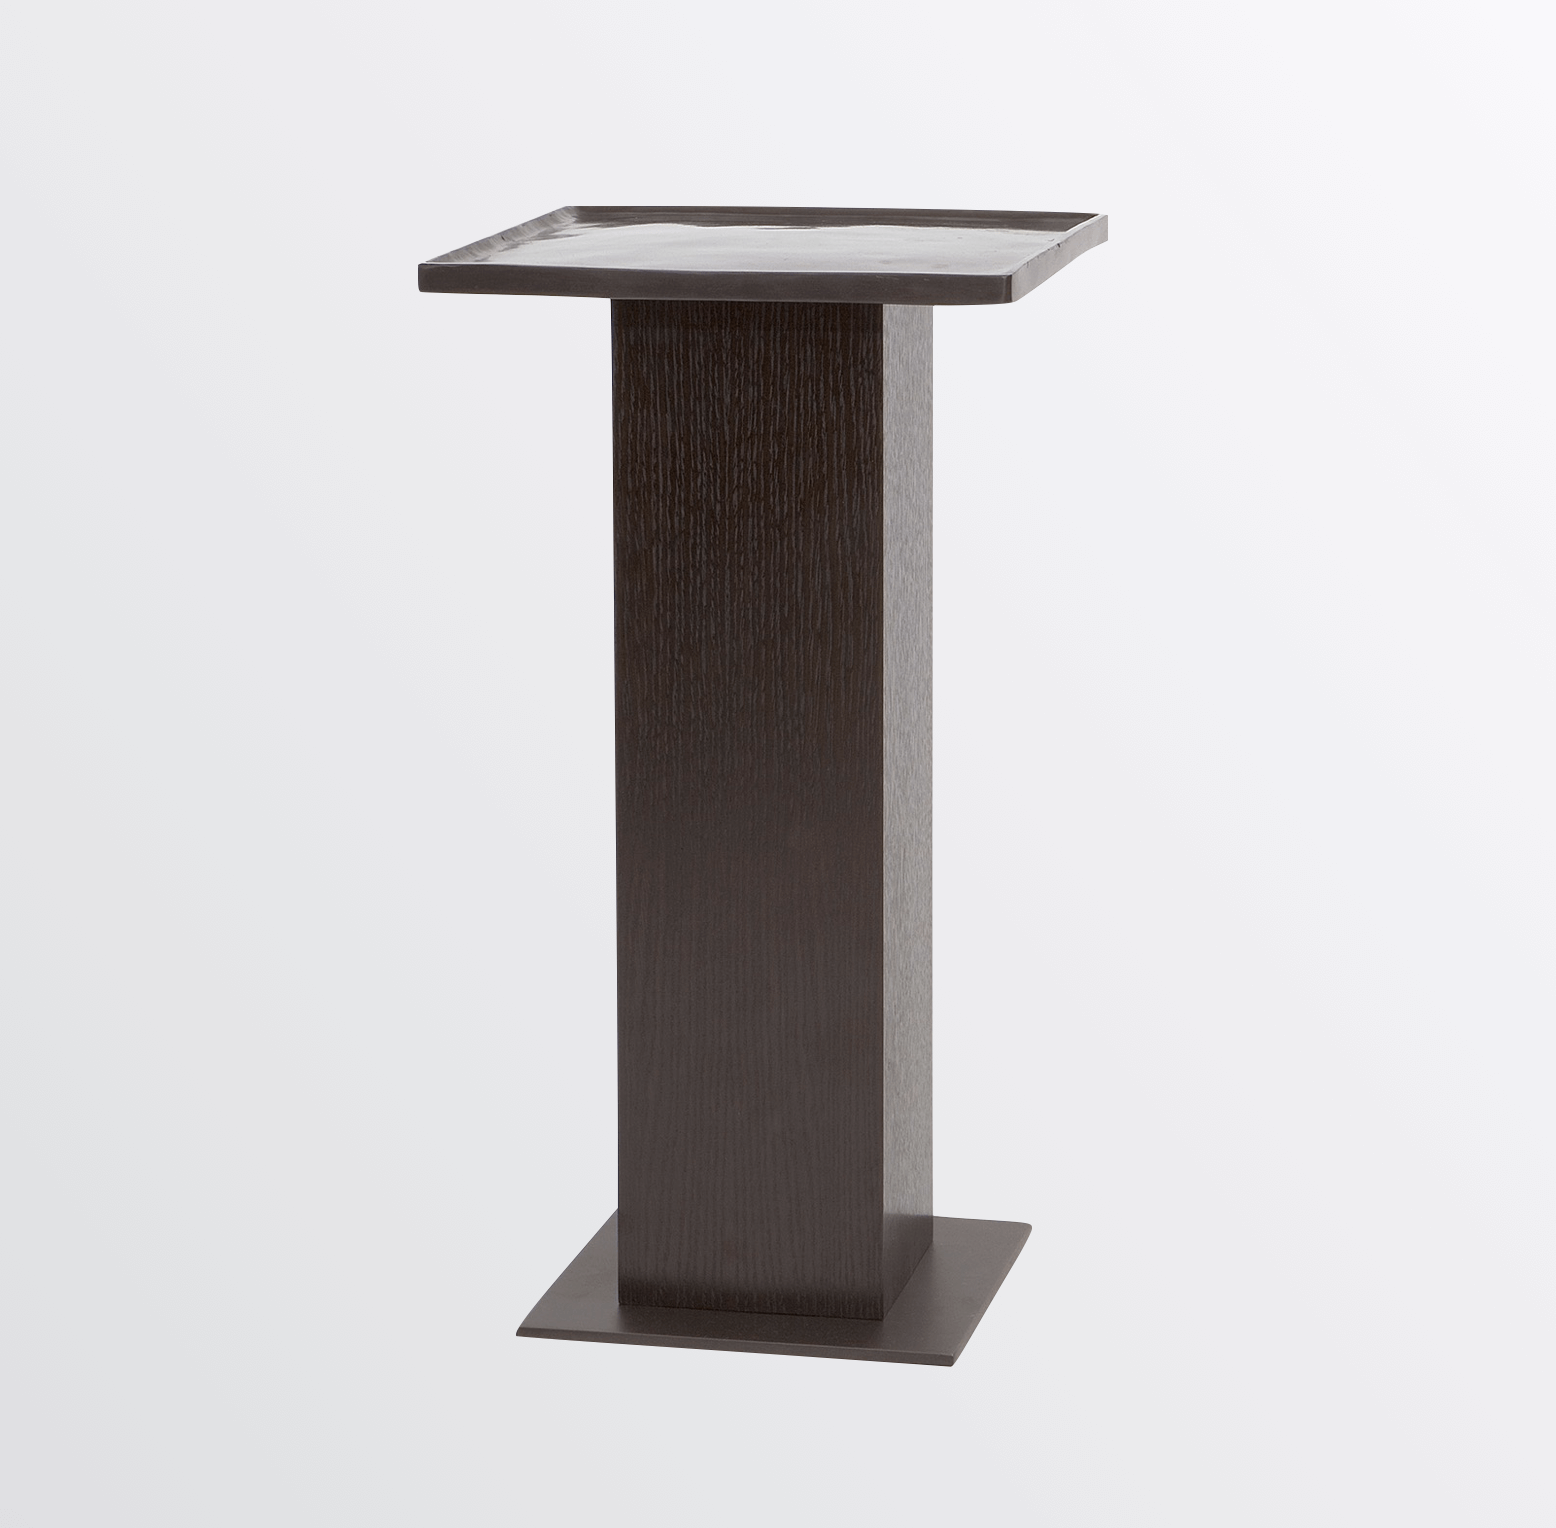 Aguirre+Design+-+Kampai+Side+Table+-+Cast+bronze,+Oak+and+Brass.png